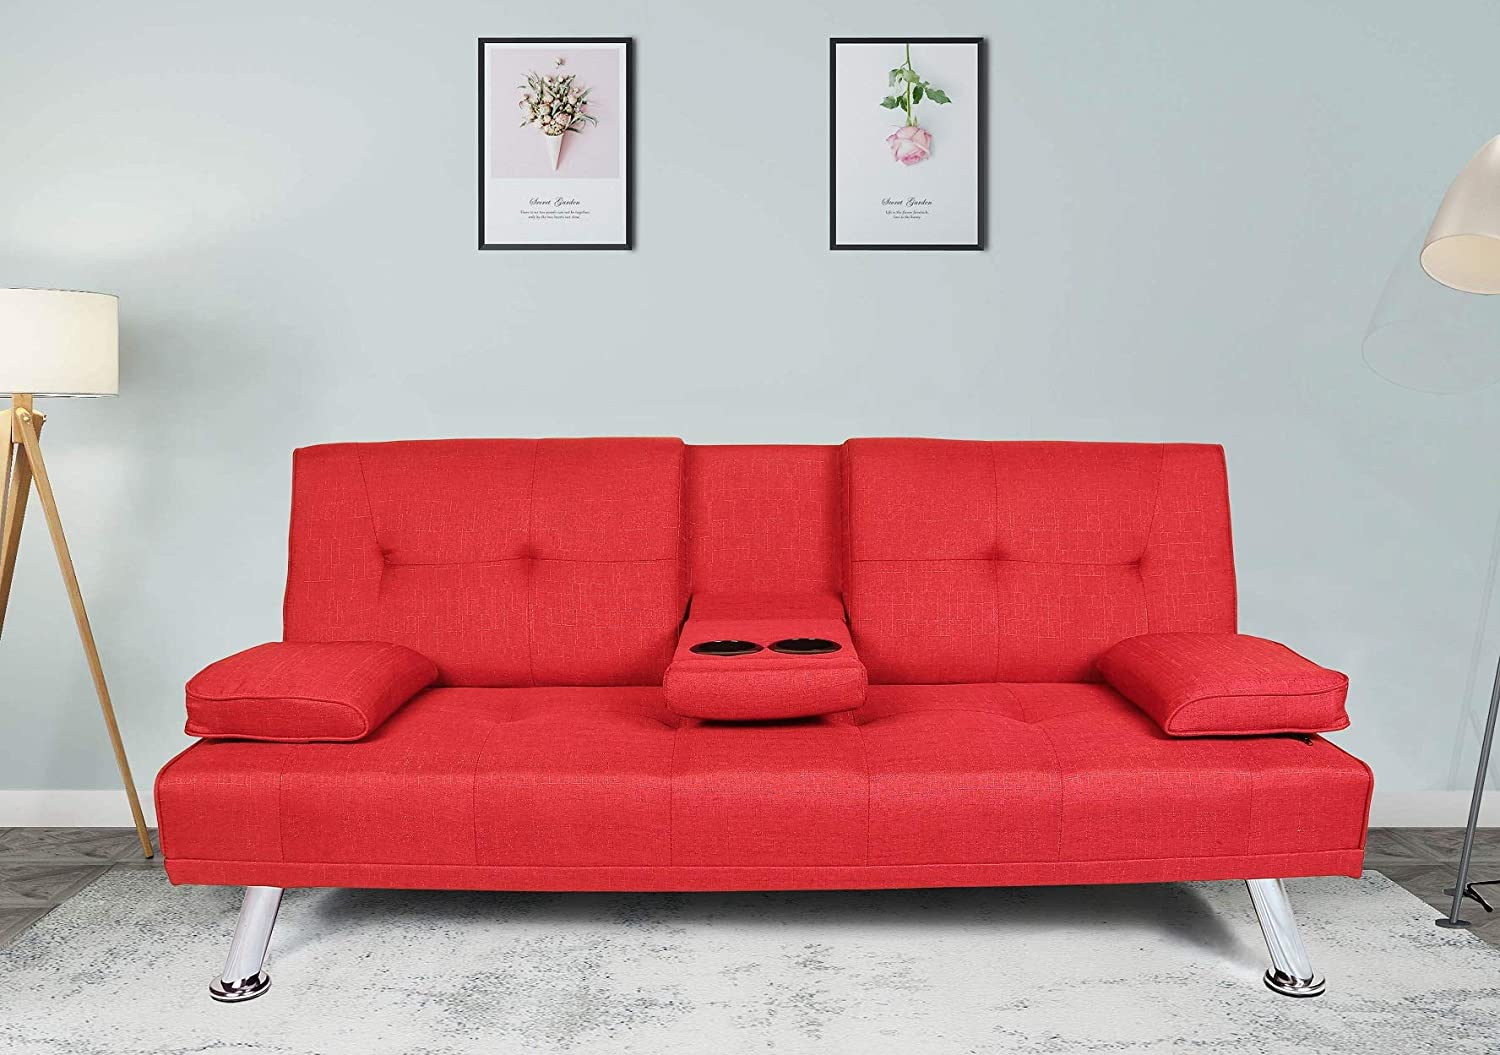 Rhomtree Futon Sofa Bed Foldable Reclining Back Sofa Sleeper with Cup Holder Modern Design Folding Lounge Couch Sofa for Home Living Room Apartment (Red)